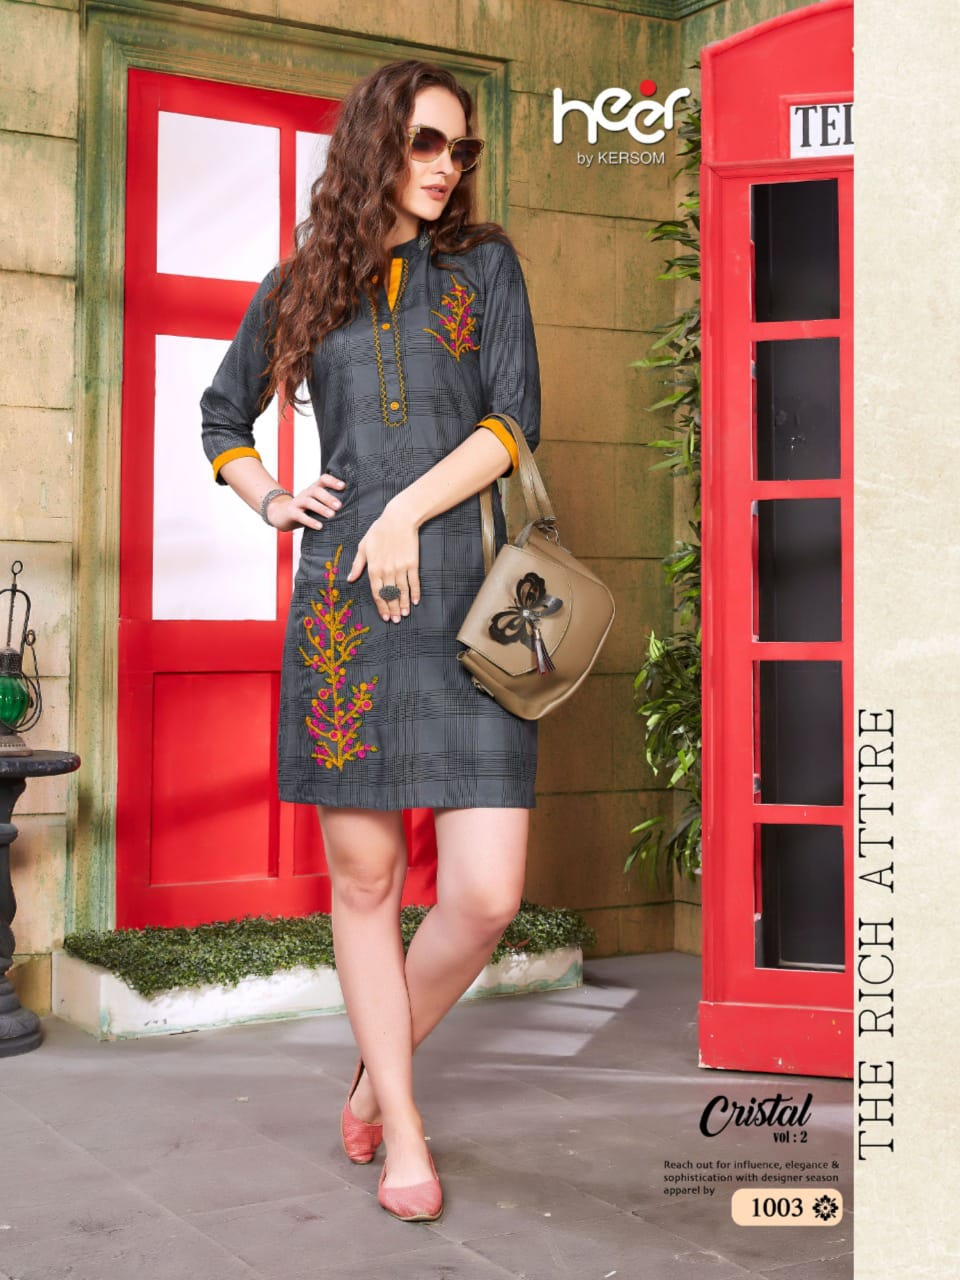 Heer Cristal 2 collection 6